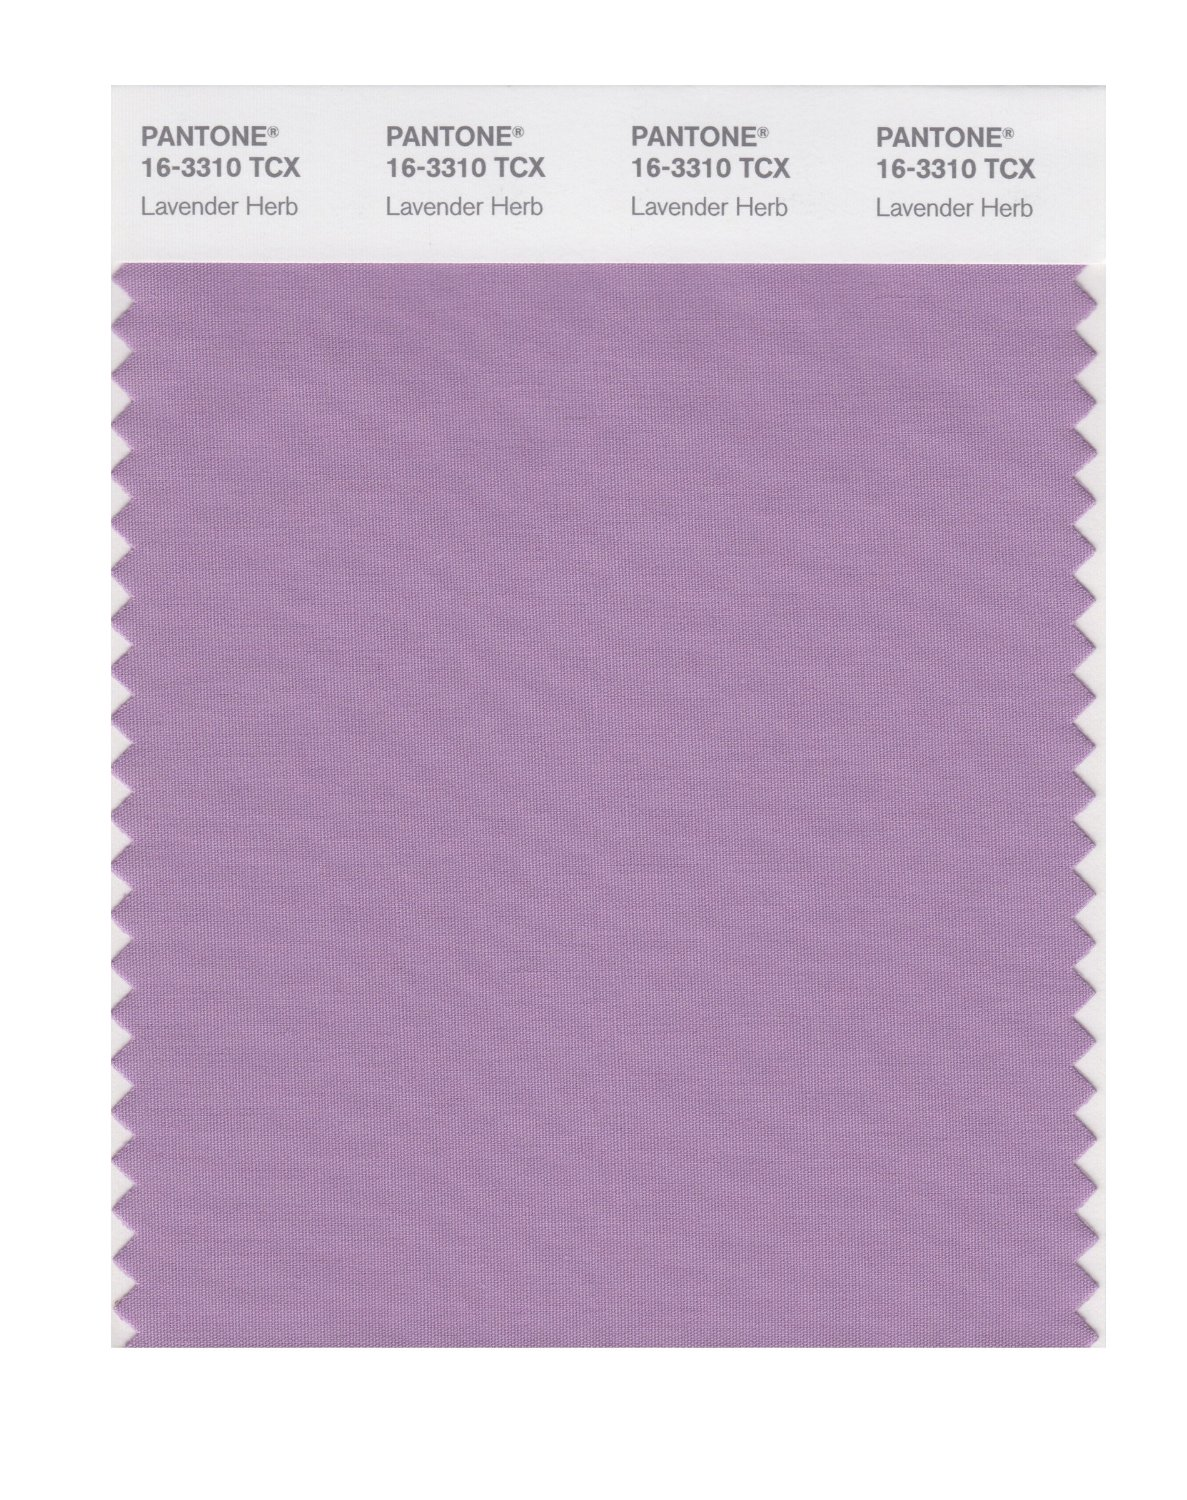 Pantone Smart Swatch 16-3310 Lavender Herb